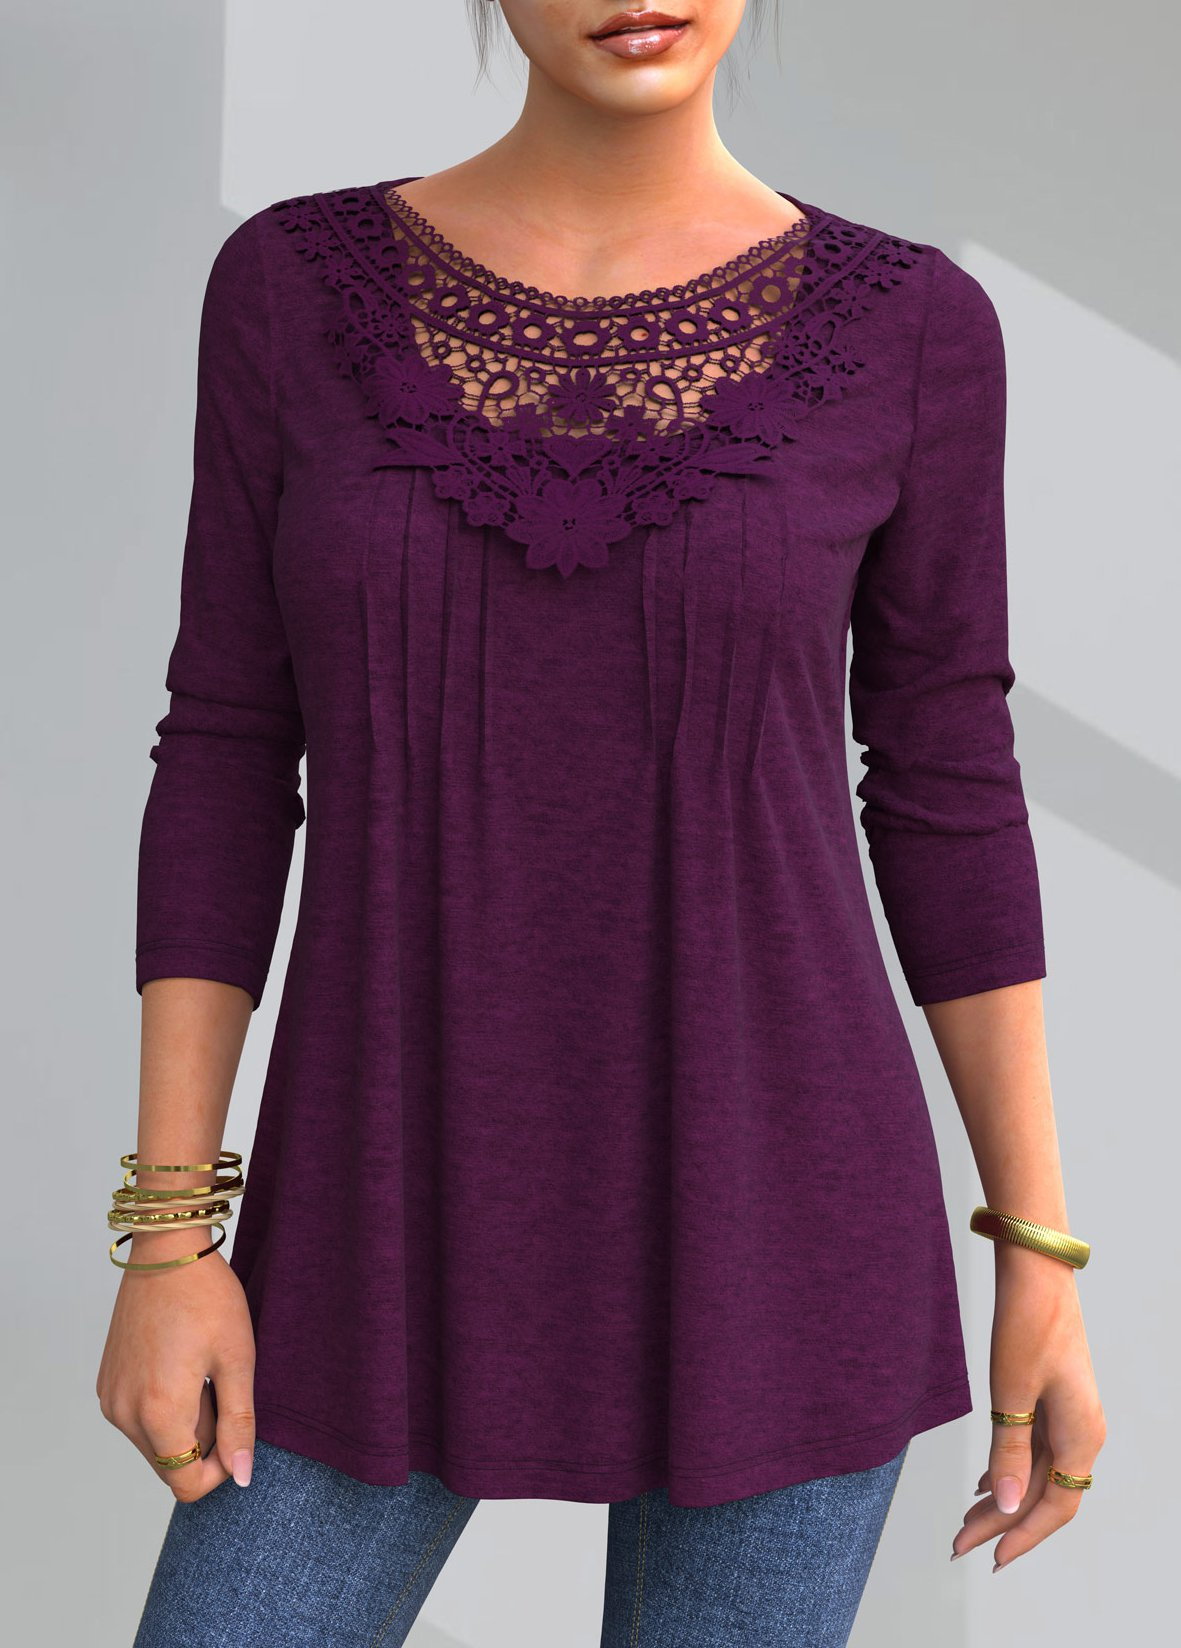 ROTITA Solid Lace Patchwork Round Neck T Shirt